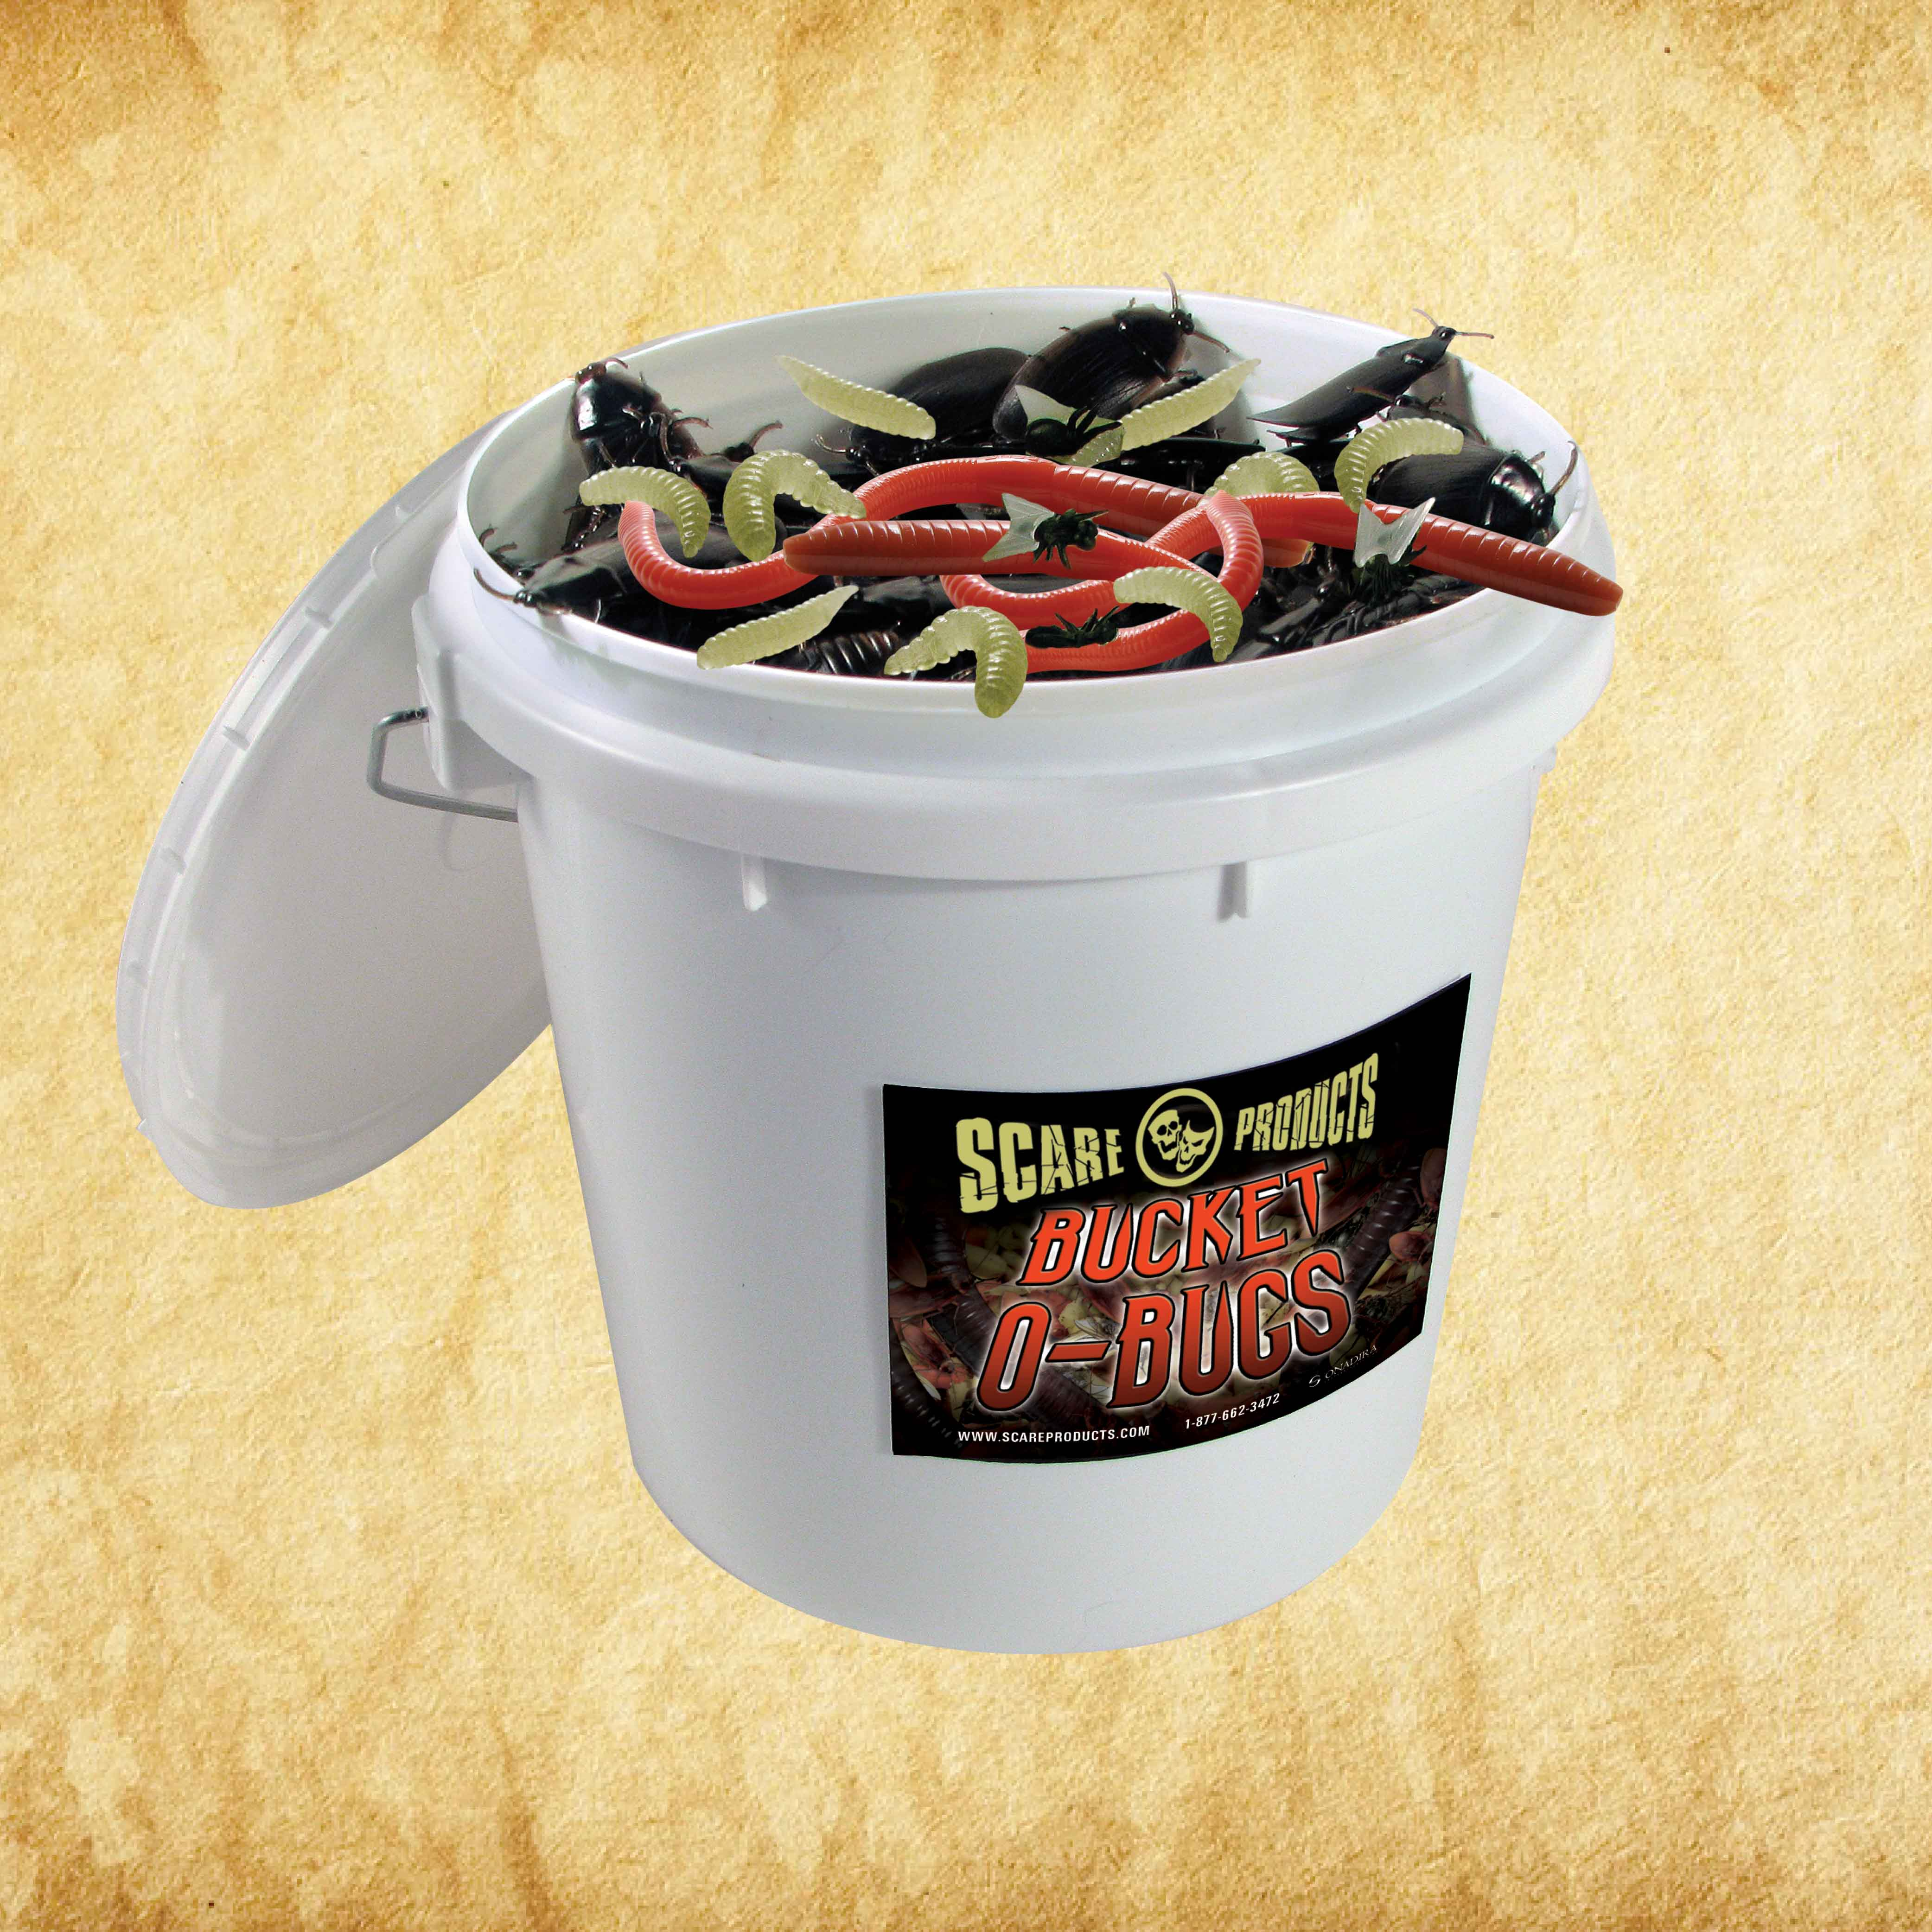 Insect Mixed Bucket (144 Roaches, 100 Worms, 480 Maggots, 288 Spiders)